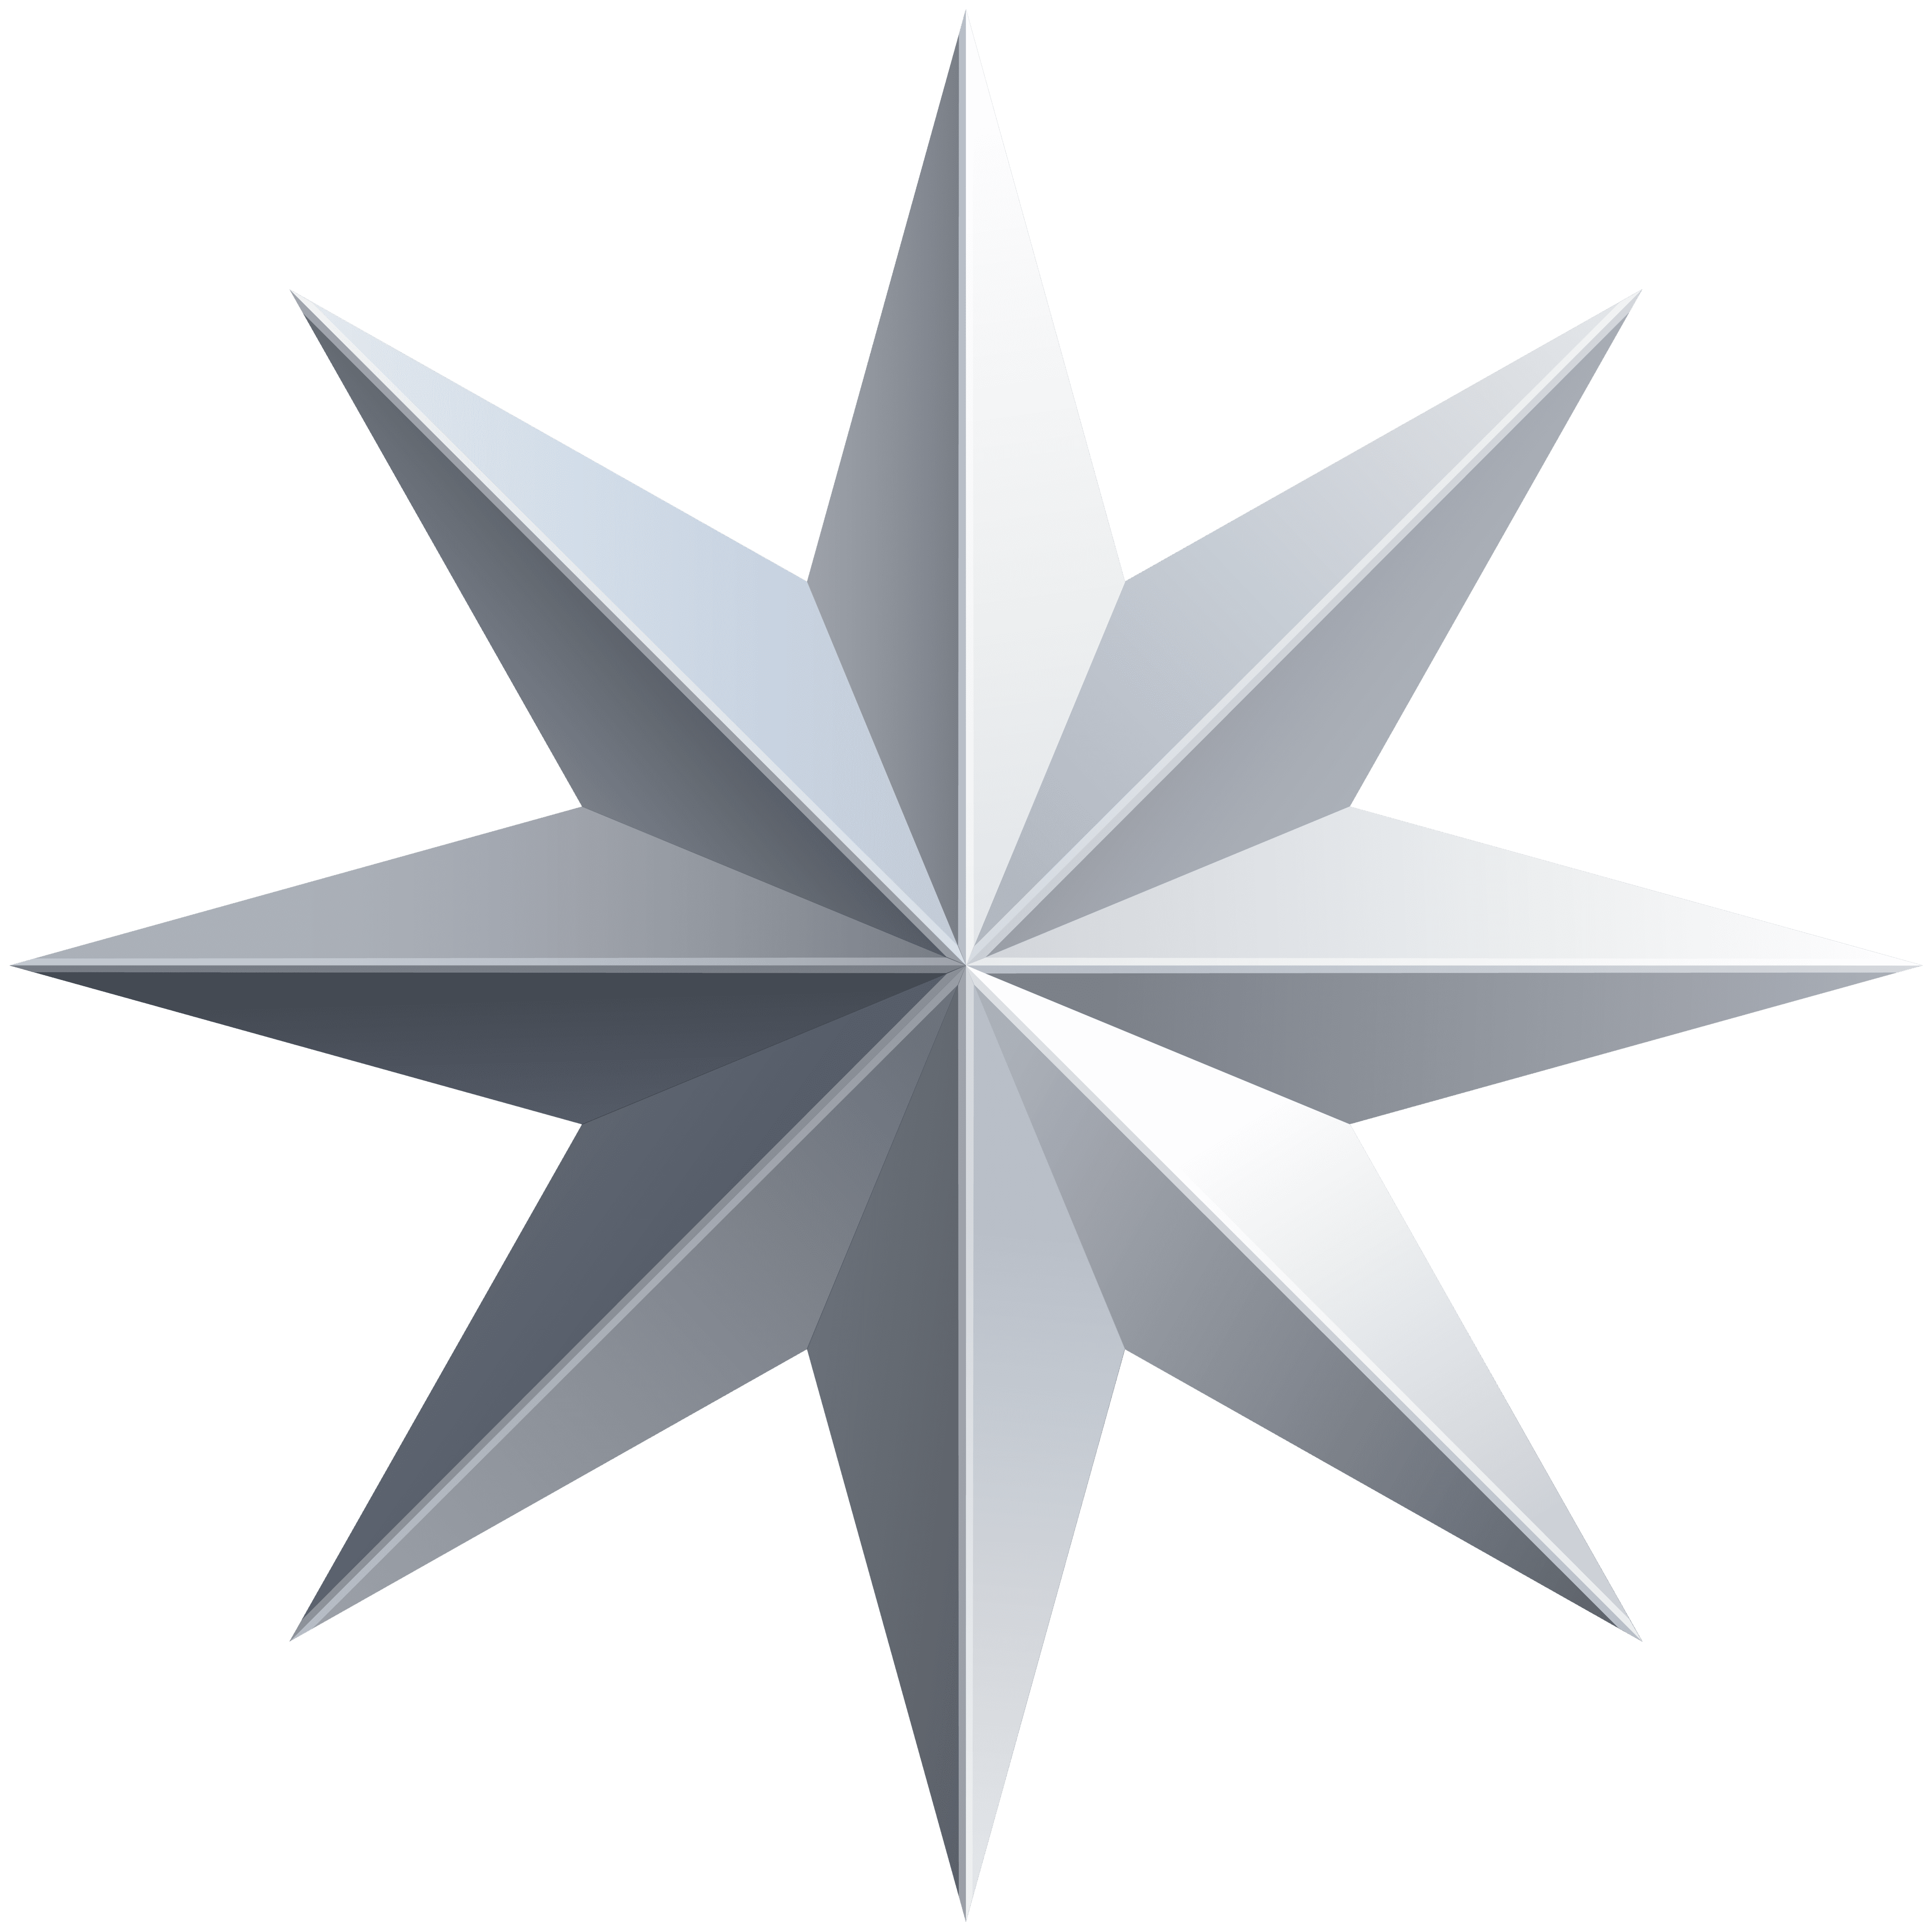 Silver Star Transparent PNG Image.